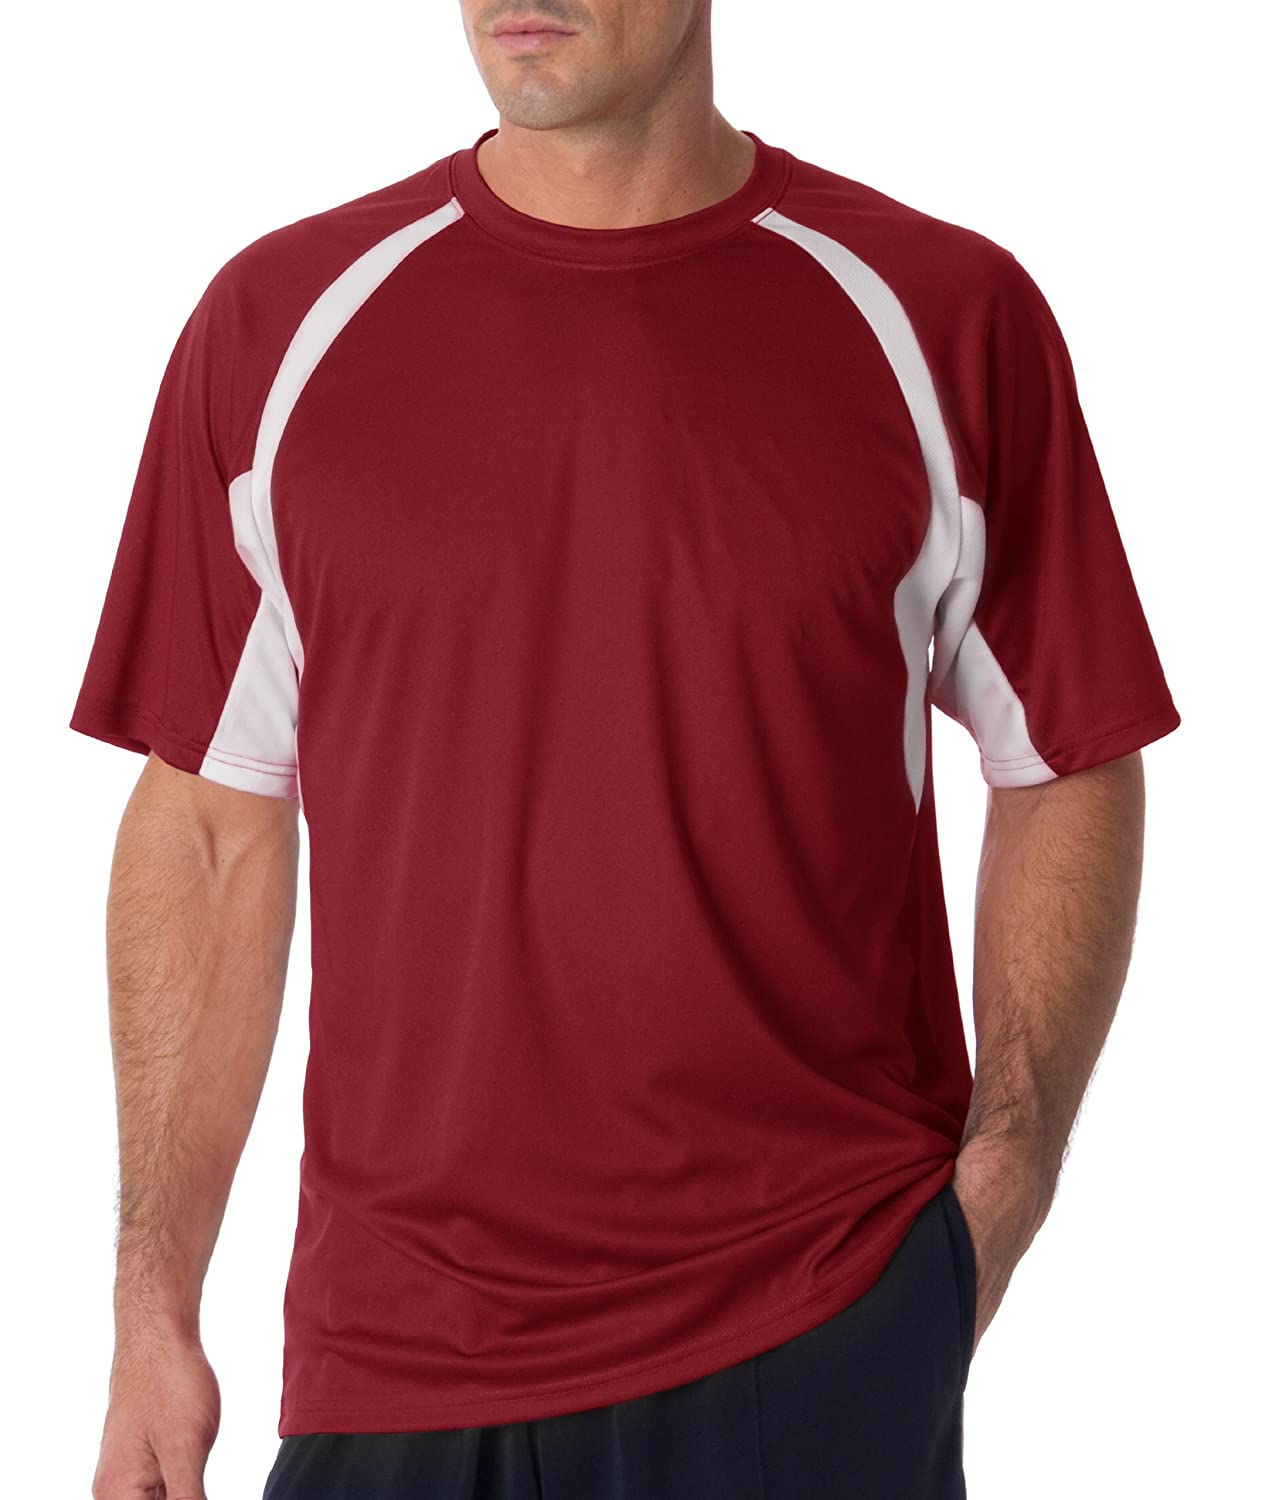 BADGER 4144 Badger Adult B-Core Short-Sleeve Two-Tone Hook Tee 4144 Badger BD4144